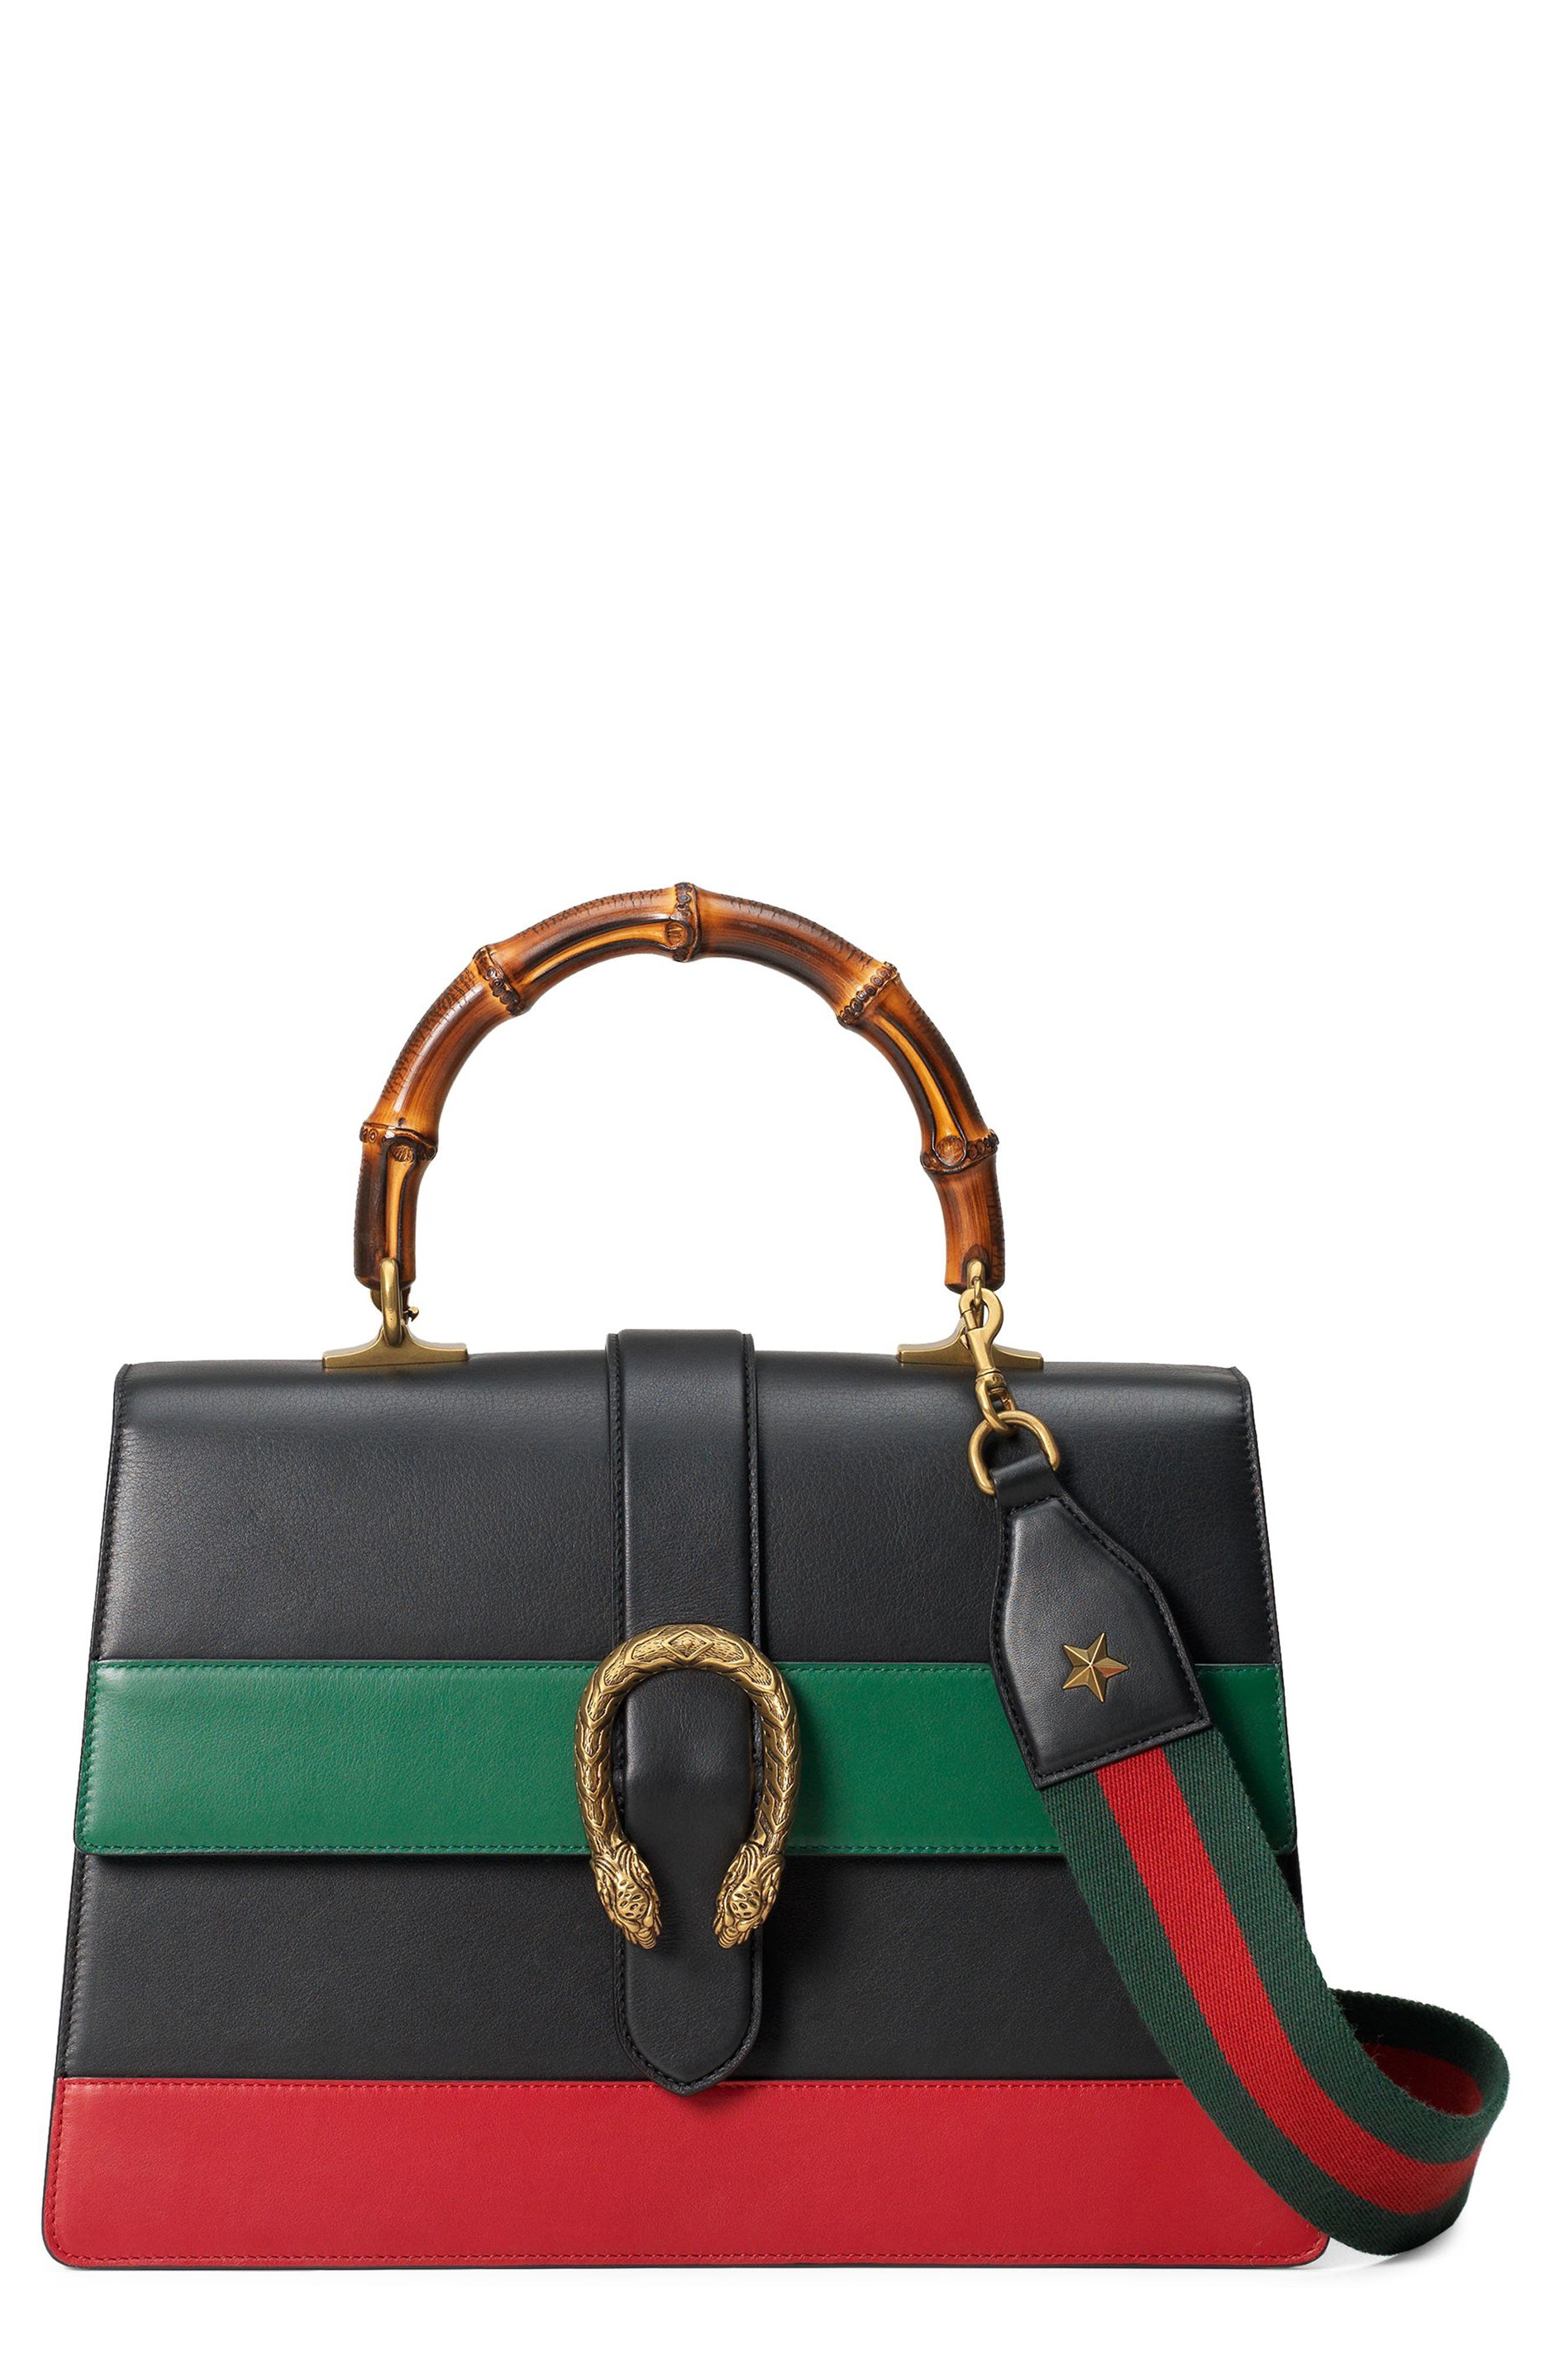 gucci bags at nordstrom. main image - gucci large dionysus top handle leather shoulder bag bags at nordstrom m